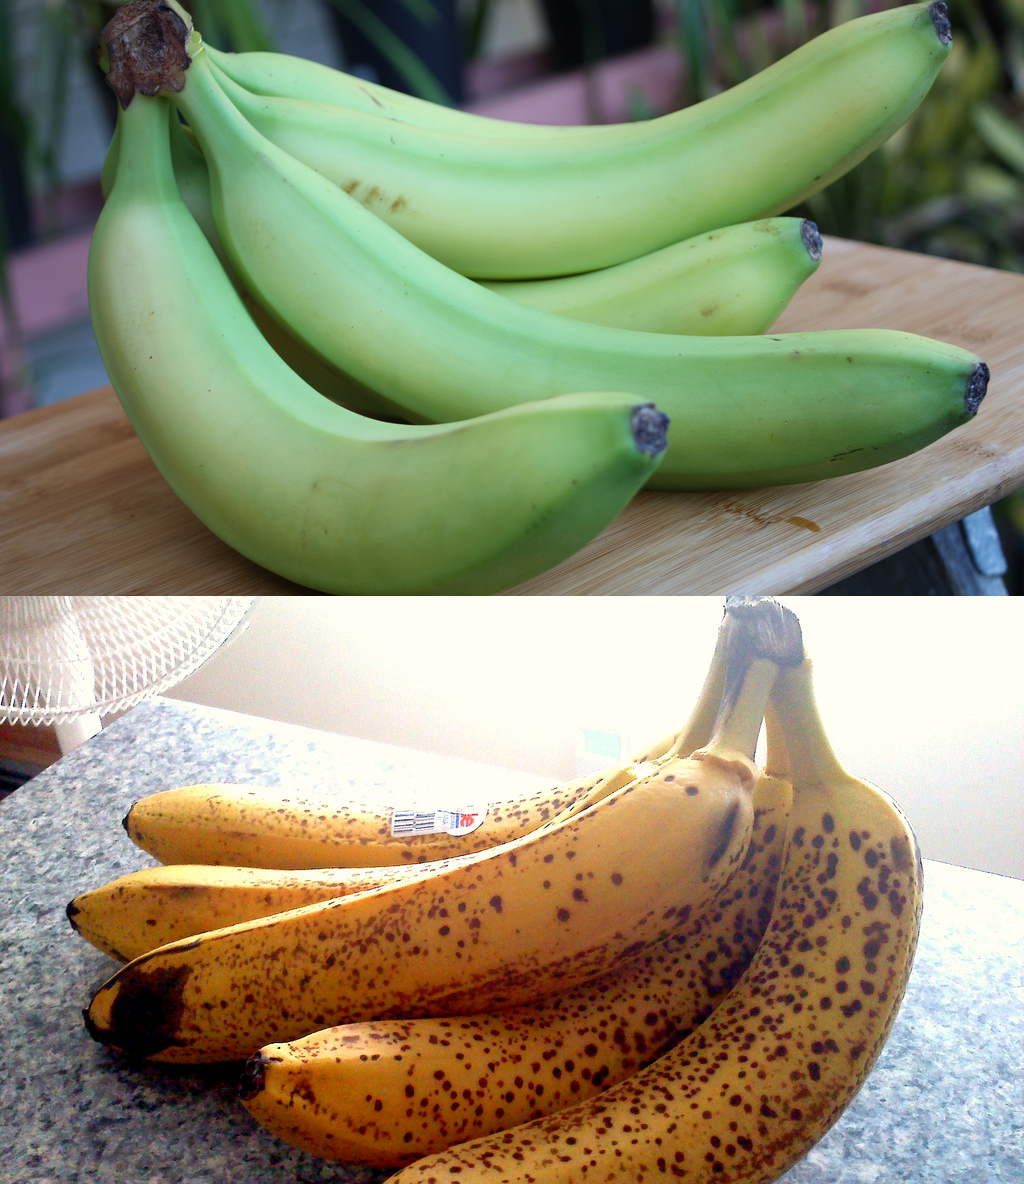 Ripe and unripe bananas